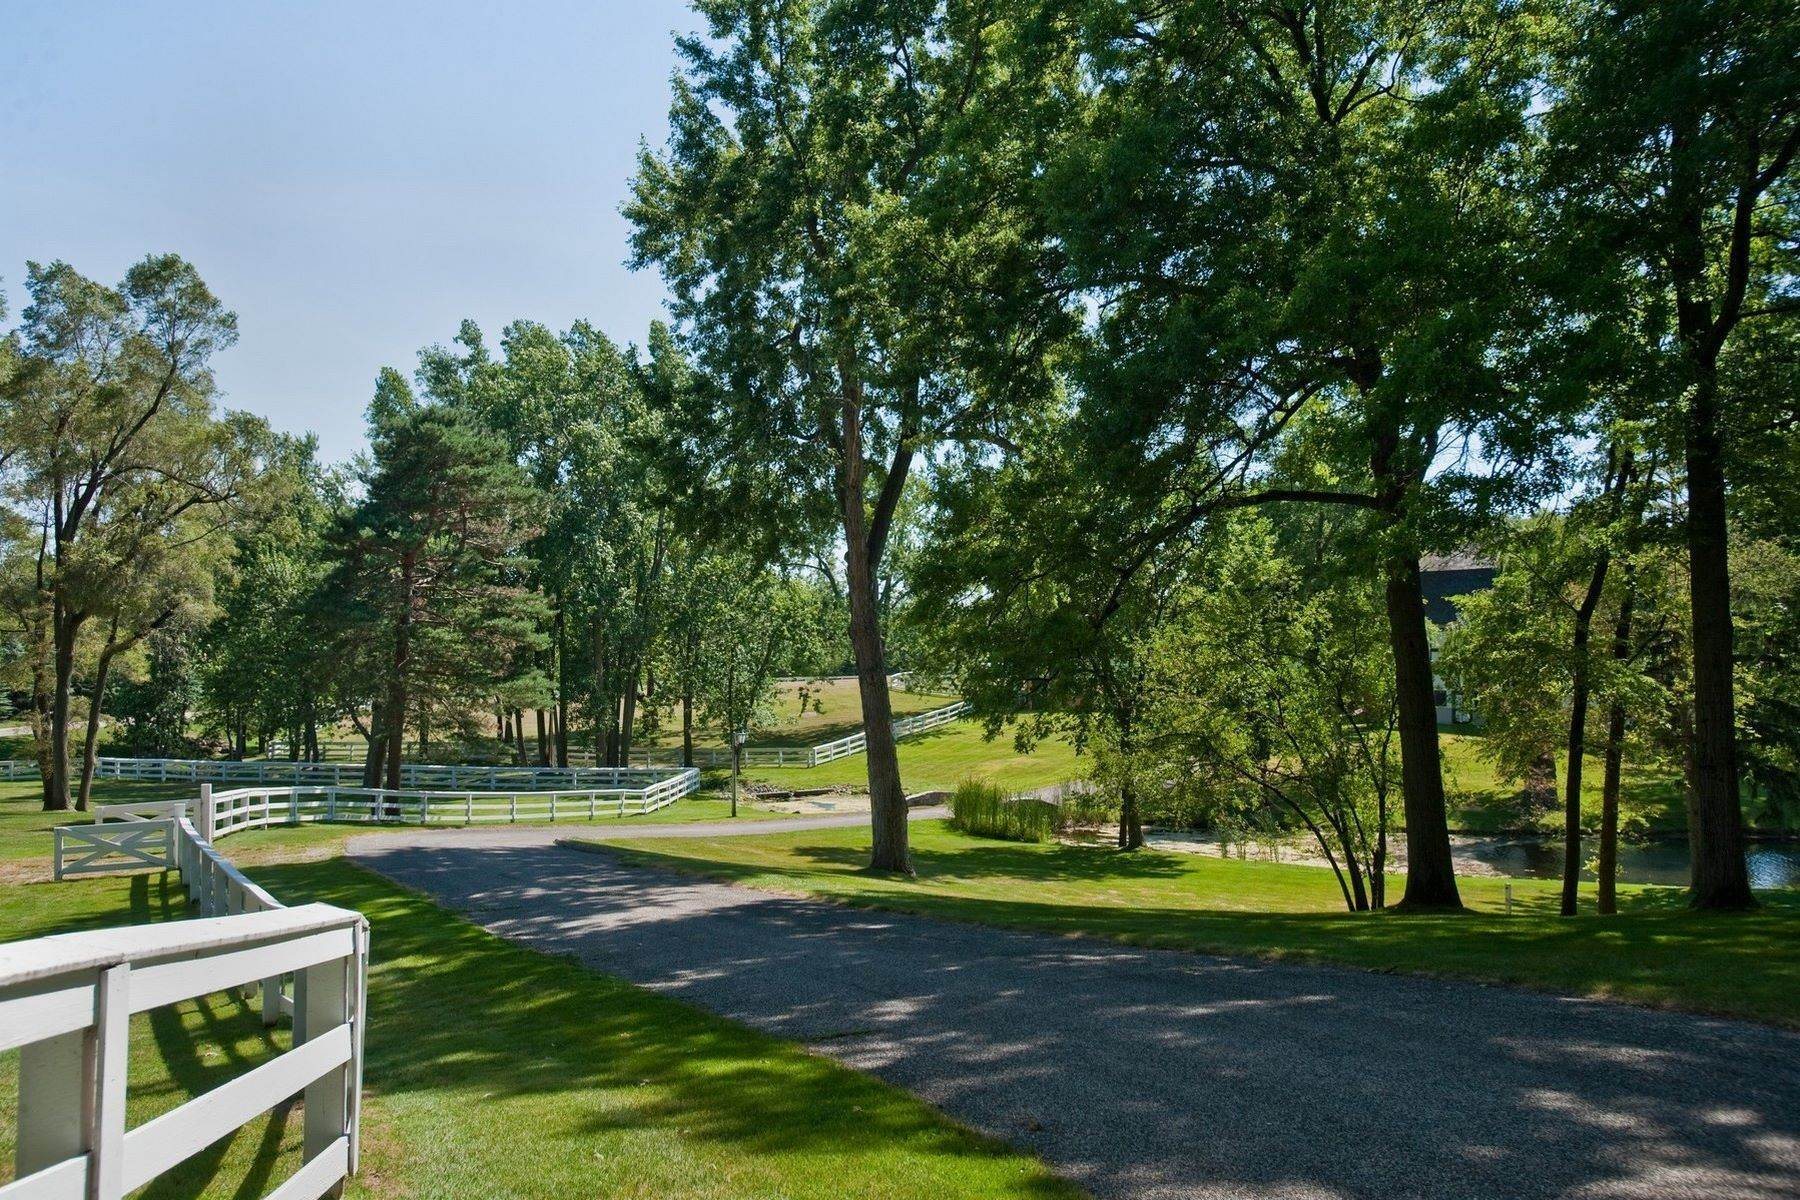 9. Property for Sale at The Stables 2670 Turtle Lake Drive, #44 and #45 Bloomfield Hills, Michigan 48302 United States